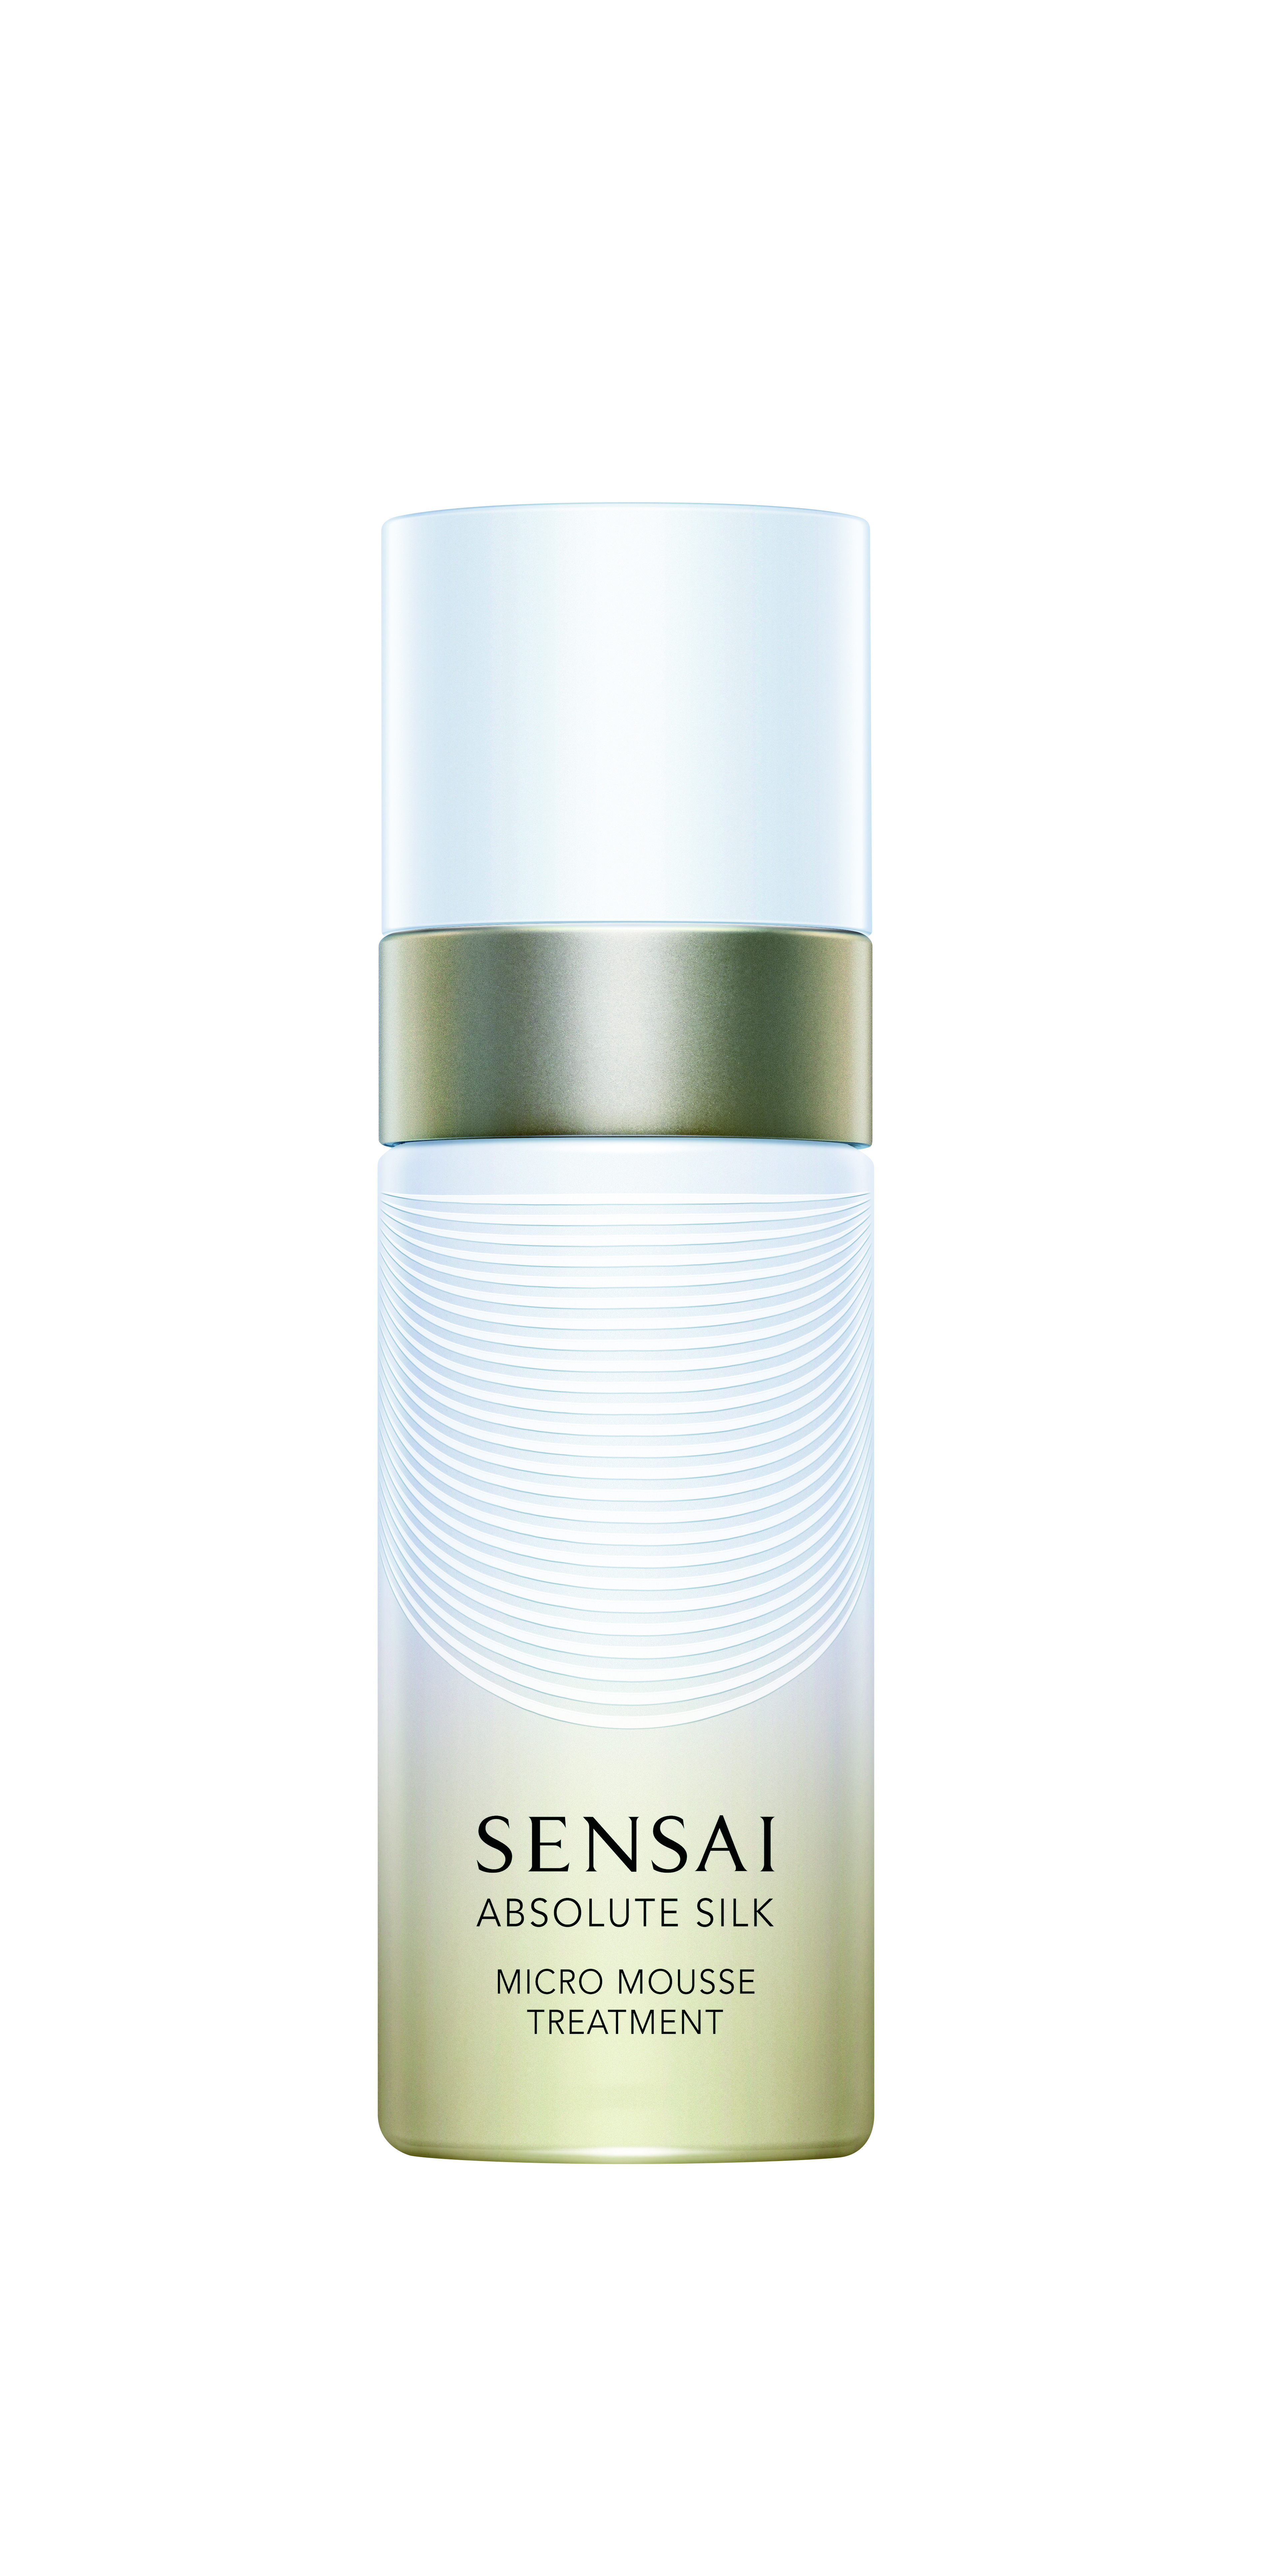 SENSAI ABSOLUTE SILK MICRO MOUSSE TREATMENT LIMITED SIZE